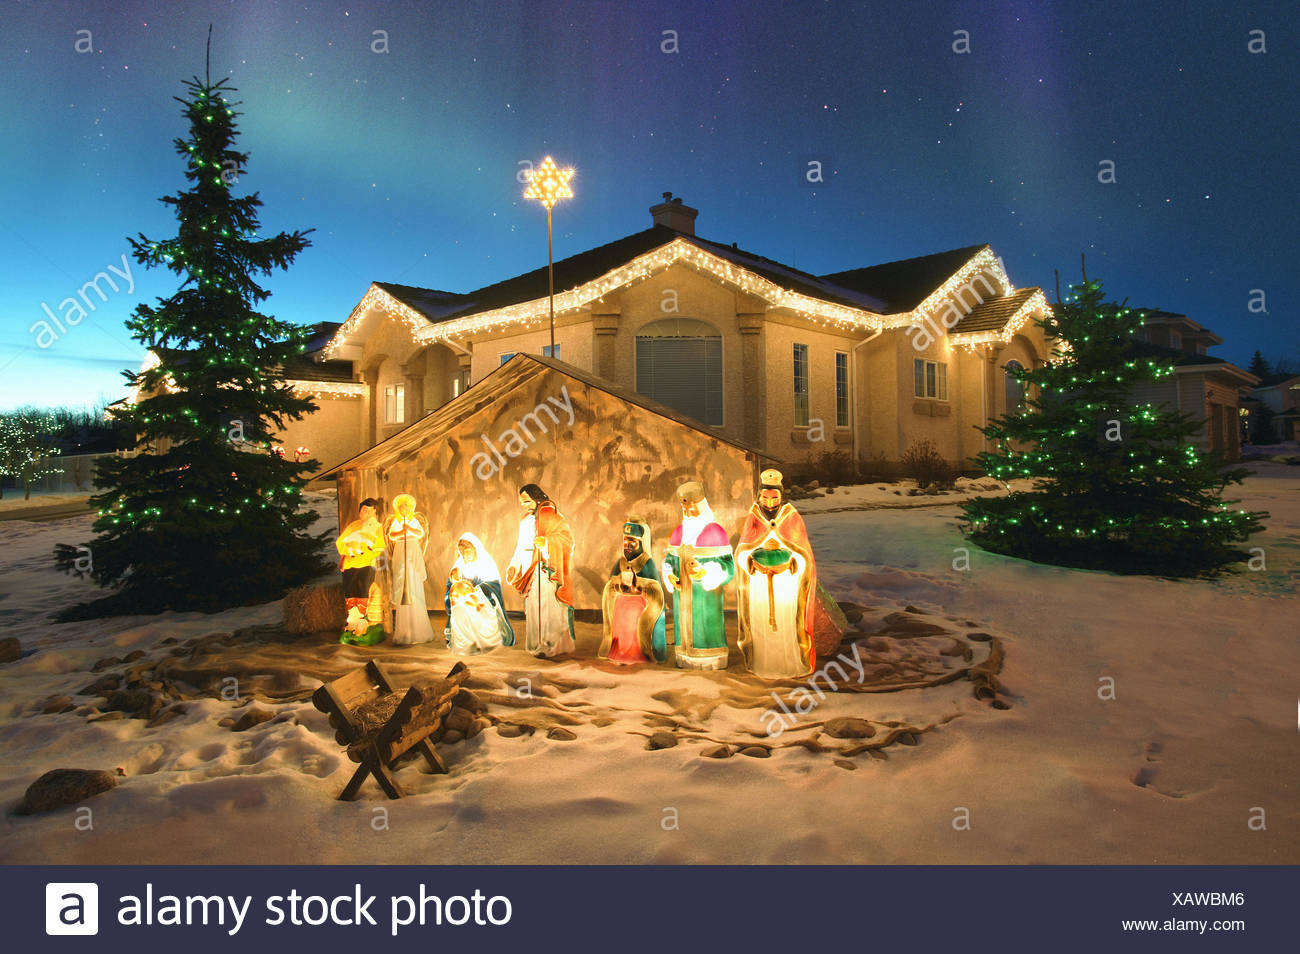 Christmas nativity scene stock photos christmas nativity scene outdoor christmas nativity scene with northern lights overhead alberta canada stock image workwithnaturefo